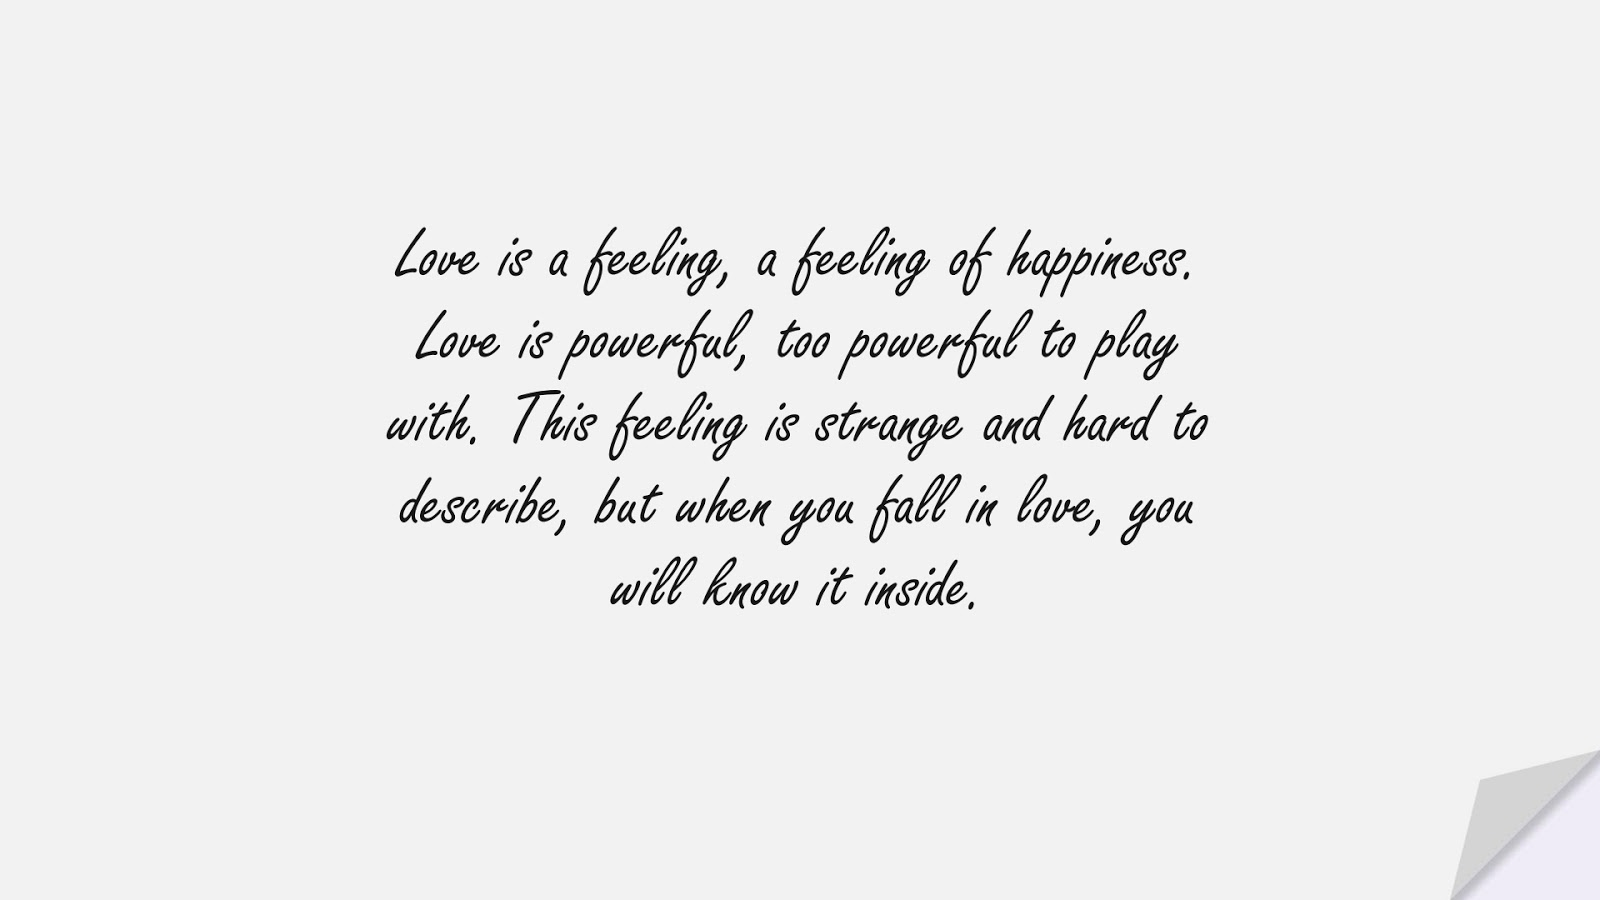 Love is a feeling, a feeling of happiness. Love is powerful, too powerful to play with. This feeling is strange and hard to describe, but when you fall in love, you will know it inside.FALSE